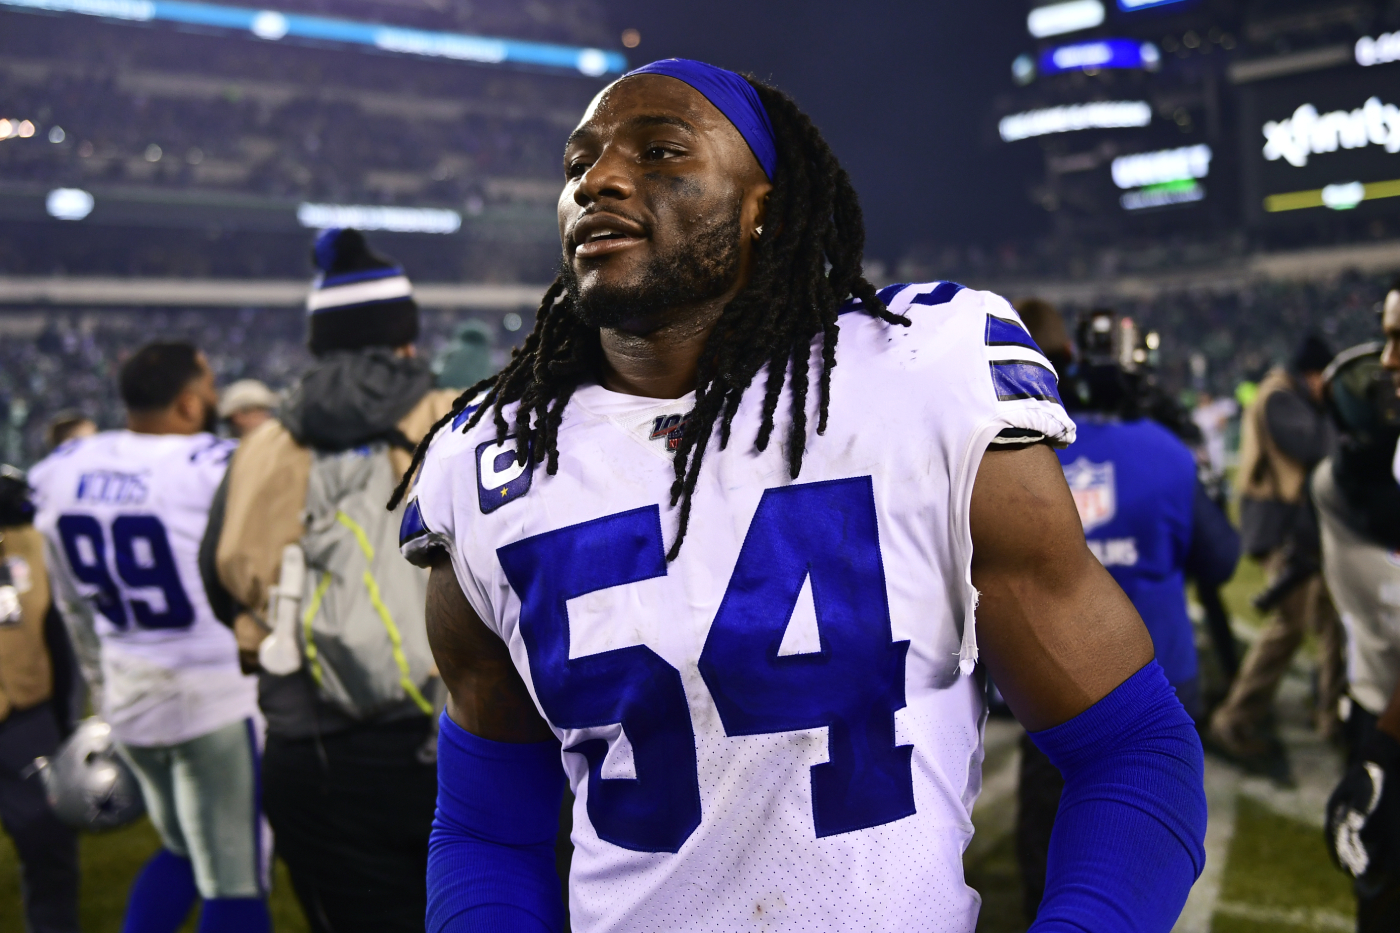 Jaylon Smith and the Dallas Cowboys' defense struggled in 2020, which has led to Smith's future with the Cowboys being very uncertain.